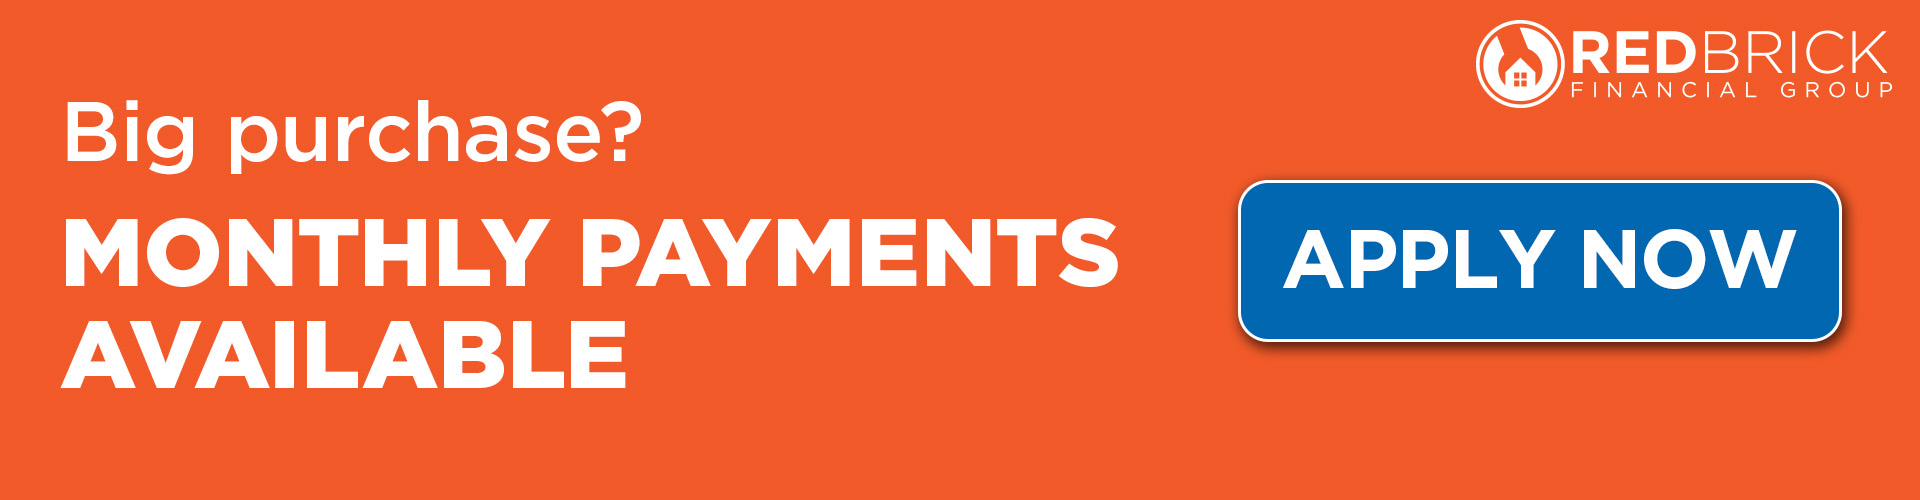 big purchase? monthly payments available. apply now